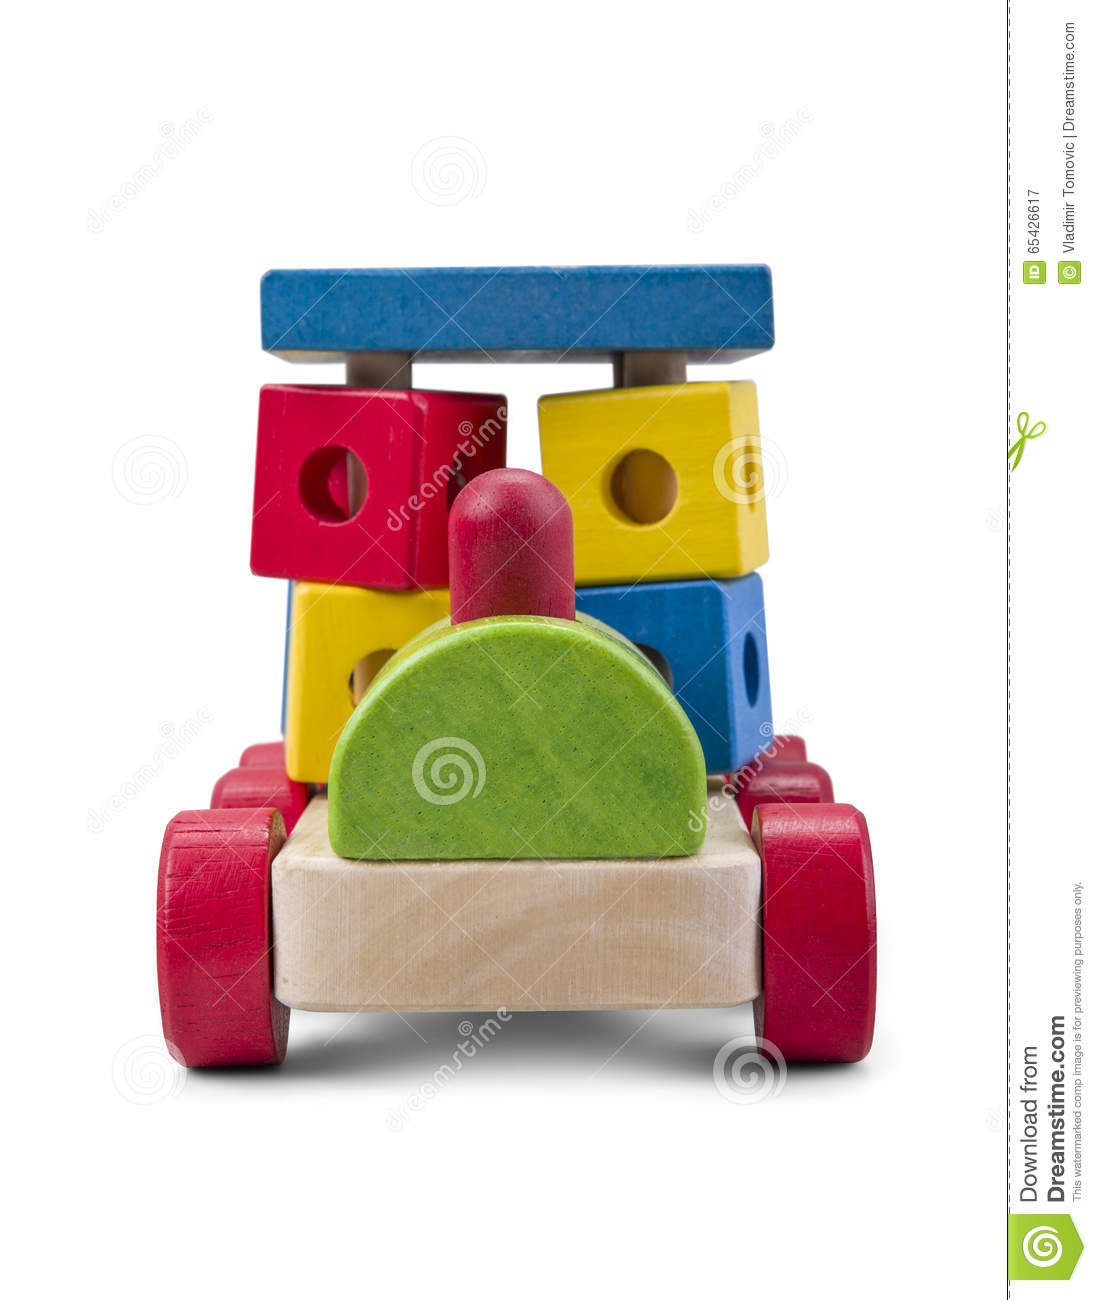 Wooden Car Truck Toy With Colorful Blocks Isolated Over White With